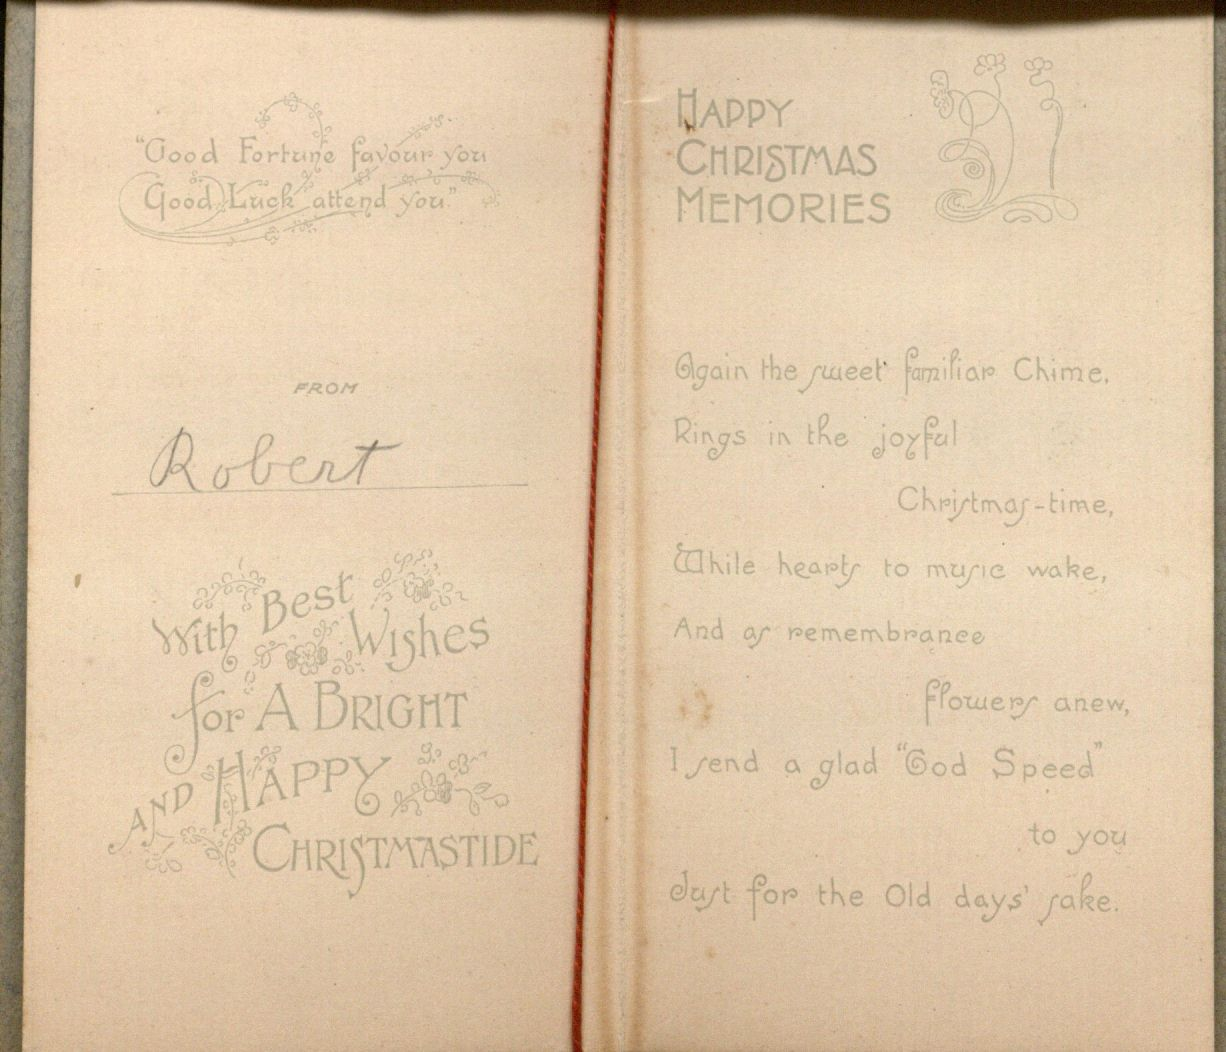 """With Best Wishes for a Bright and Happy Christmastide;"" Holiday card, interior (from ""Robert""), undated."